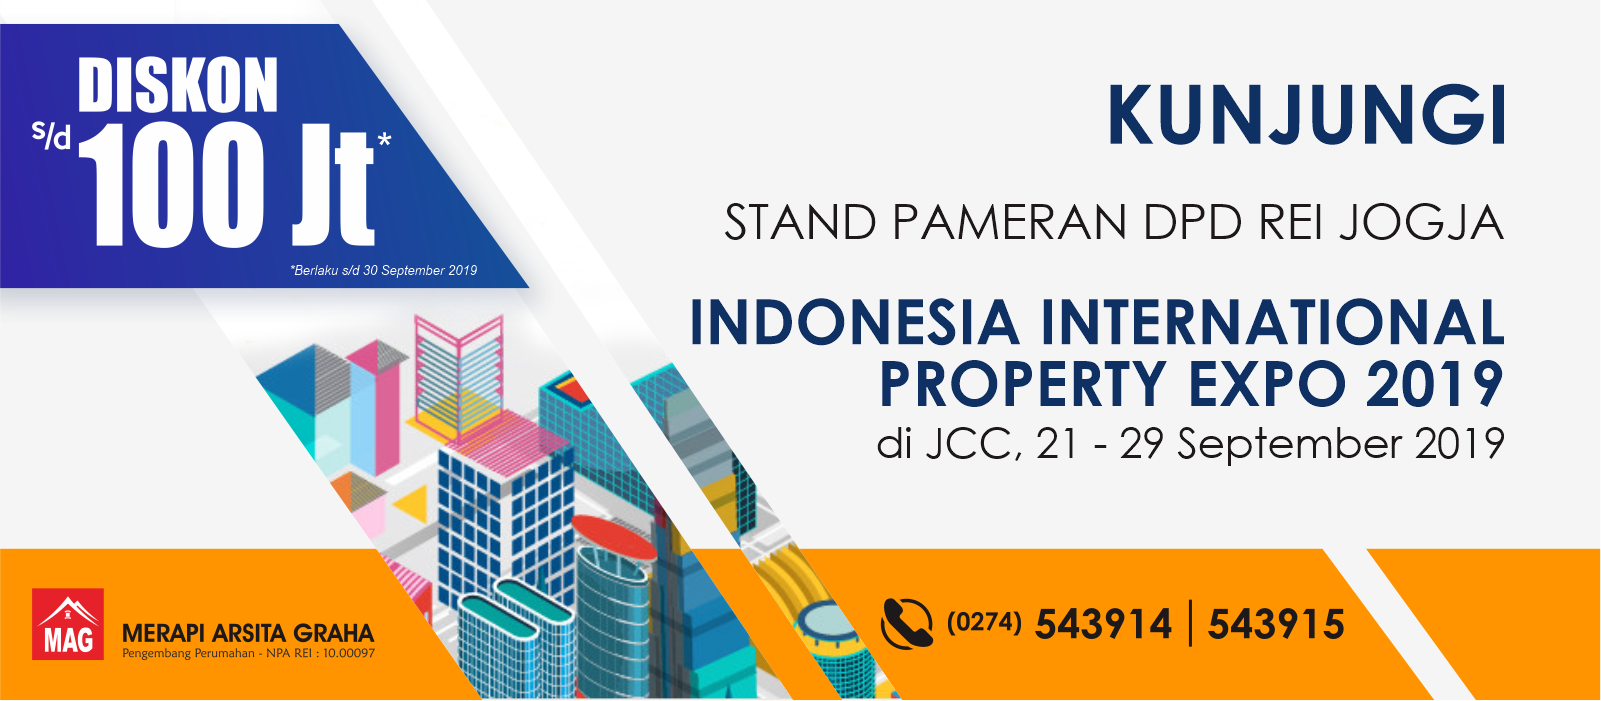 Indonesia International Property Expo 2019, The Biggest Property Expo In Indonesia